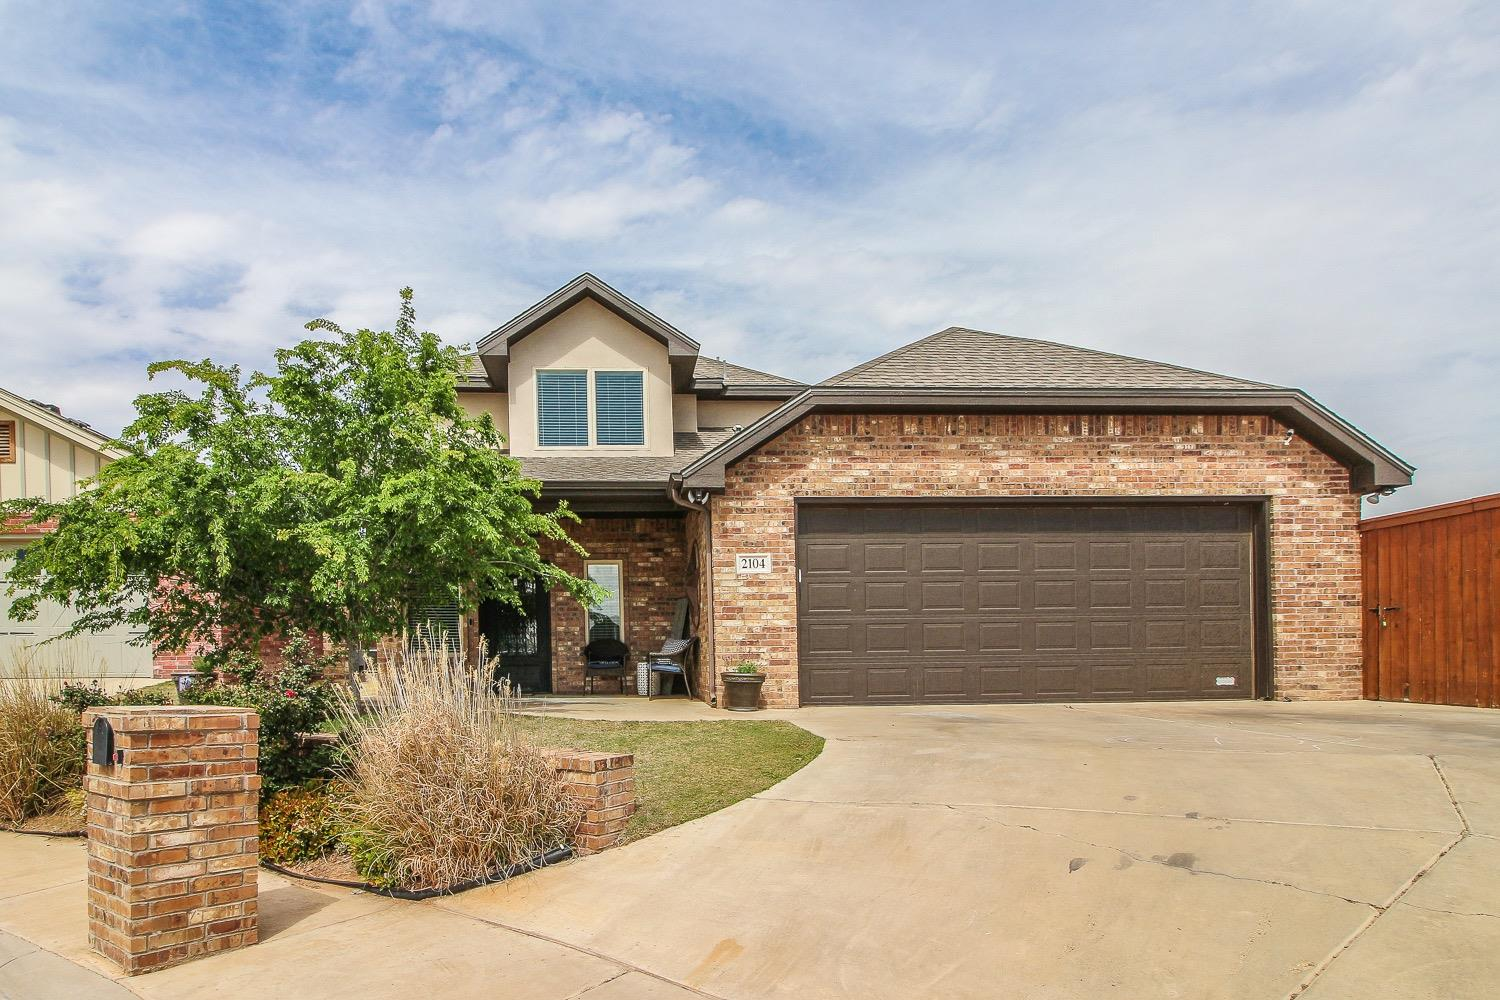 If you're looking for amazing, you just found it. This home is located on a culdesac in Cooper ISD. 4 spacious bedrooms and 4 FULL bathrooms; each bedroom has an adjoining bathroom. The open concept living area looks into the spacious kitchen which includes granite, a breakfast bar, stainless appliances and recessed lighting; pantry to be finished out with acceptable offer. The master suite is located downstairs and it's bathroom features an ENORMOUS, double shower. Upstairs, you will find 2 bedrooms, 2 bathrooms and a wrap-around utility closet; perfect for storing seasonal items. The back yard is low maintenance and boasts a large covered patio with side dog run. Zoned heat/air, handicap accessibility, epoxy garage floor and ample storage. This home is almost 3000 square feet and move-in ready; a rare find in this price-range. Call the listing agent to set up your personal showing.